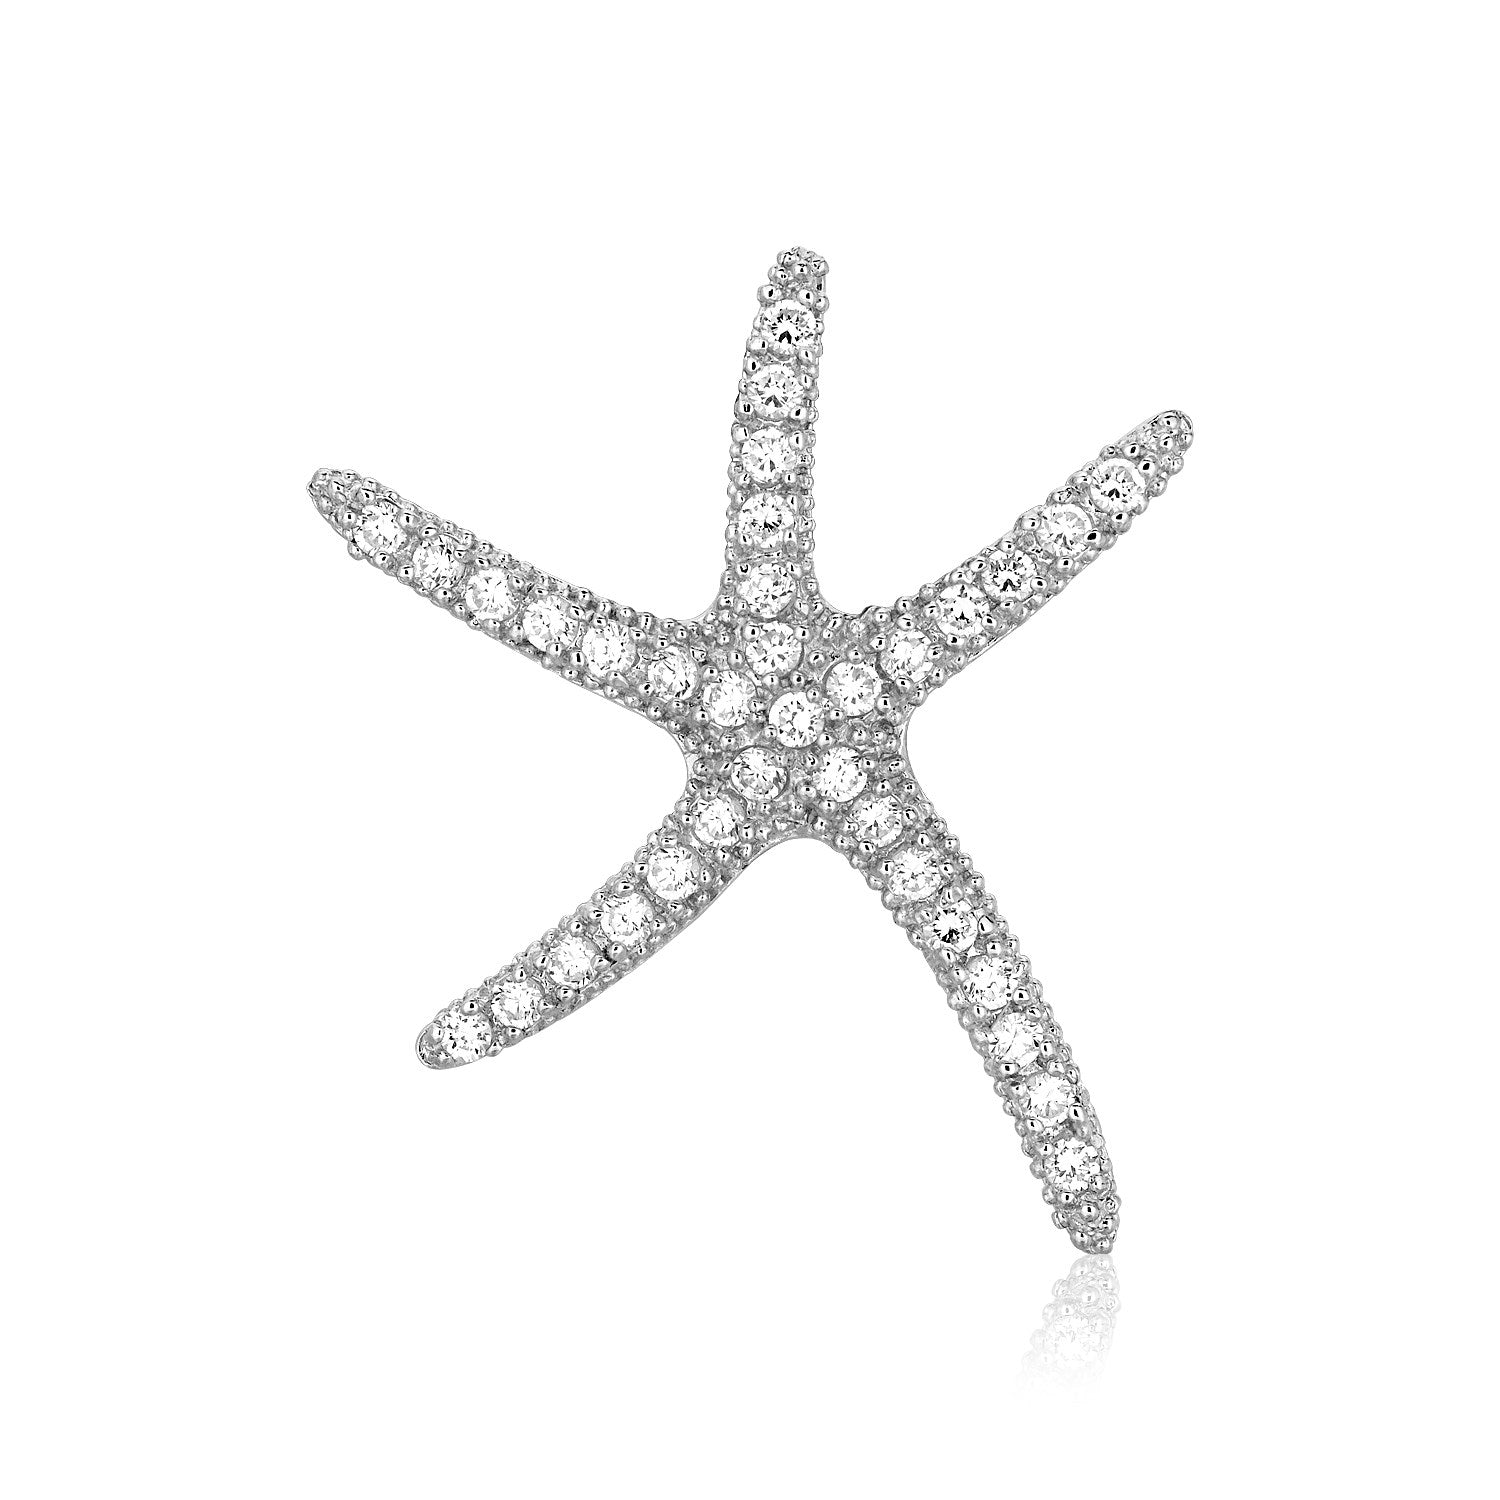 Sterling Silver Large Starfish Pendant with Cubic Zirconias